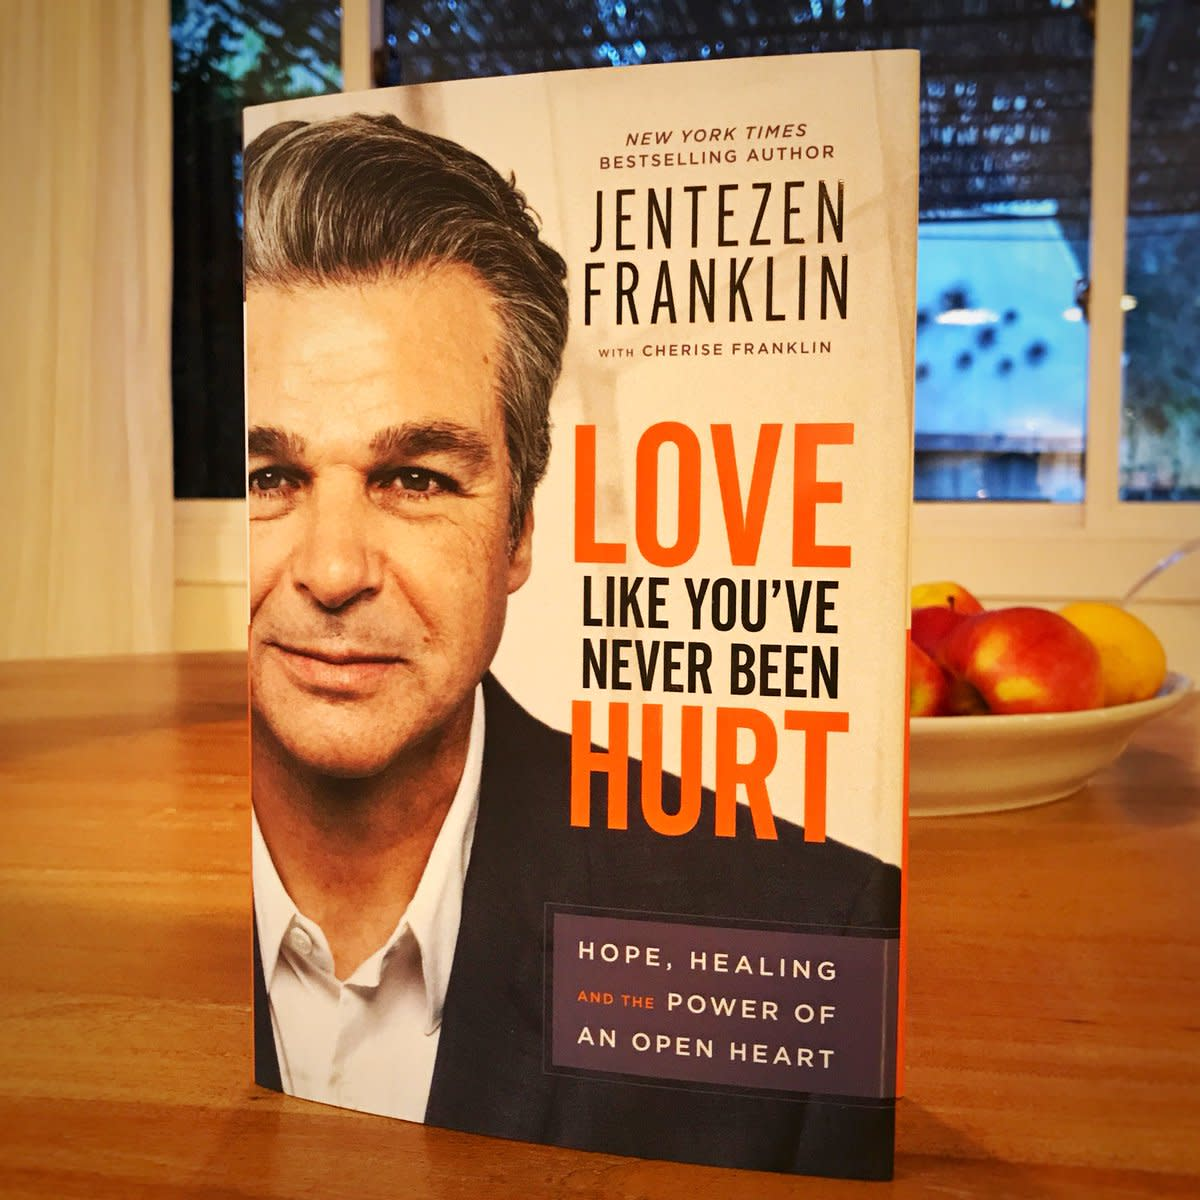 love-like-youve-never-been-hurt-book-by-jentezen-franklin